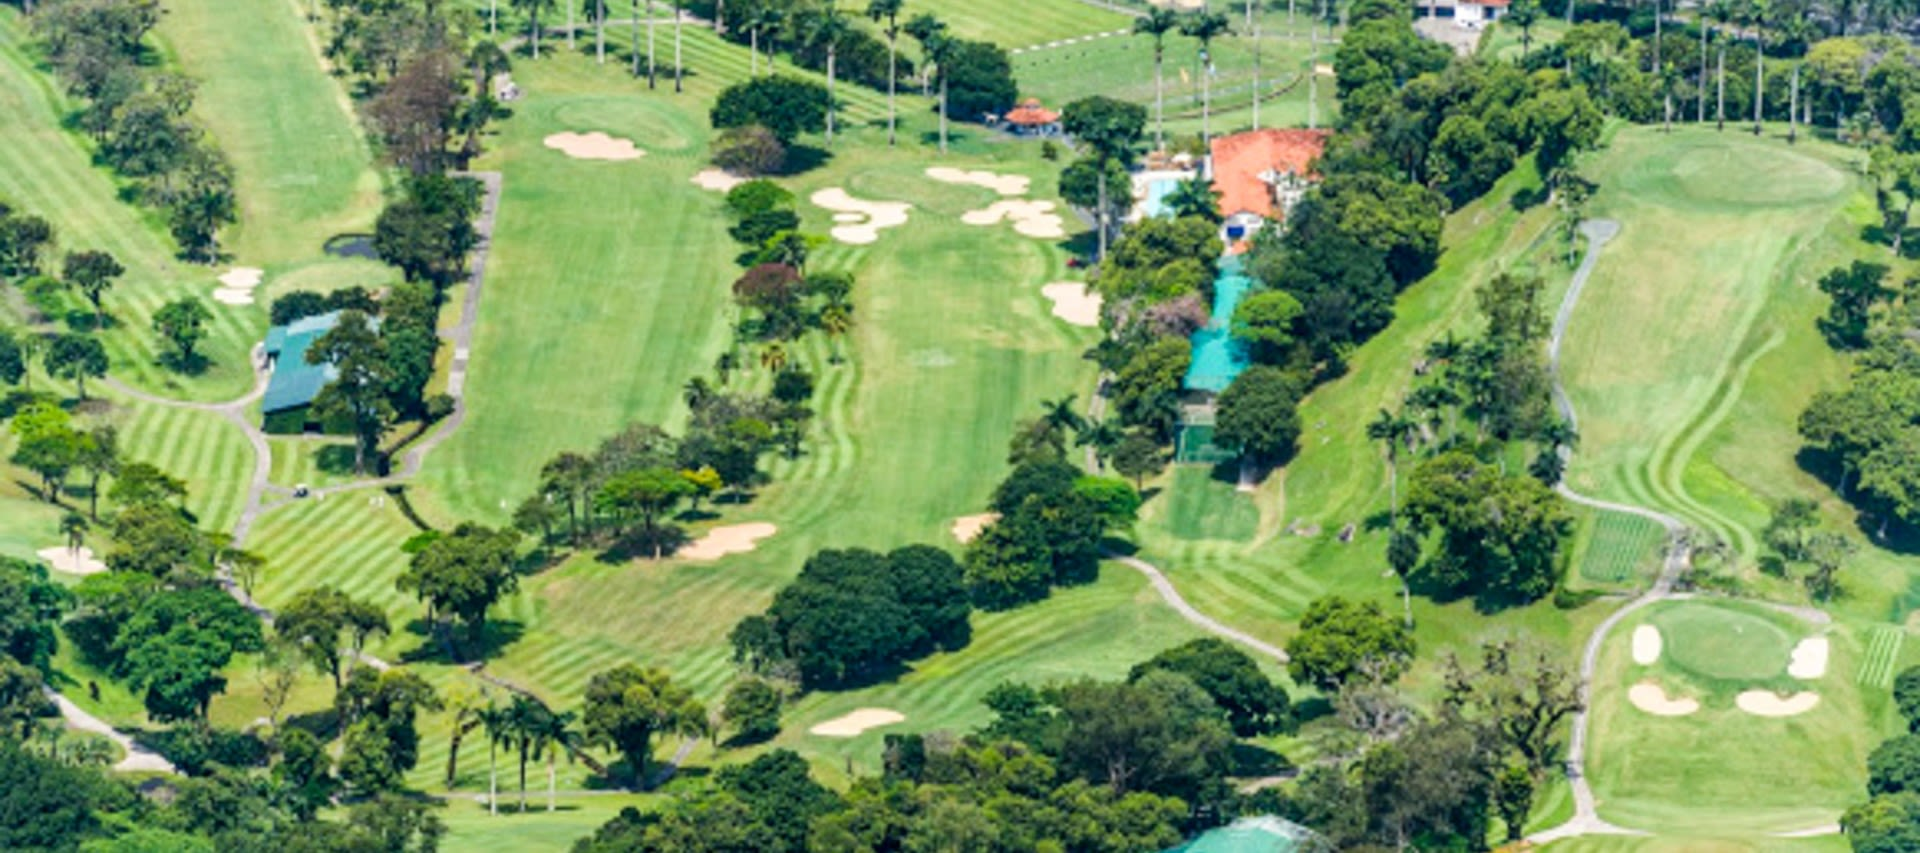 Aerial view of South America golf course